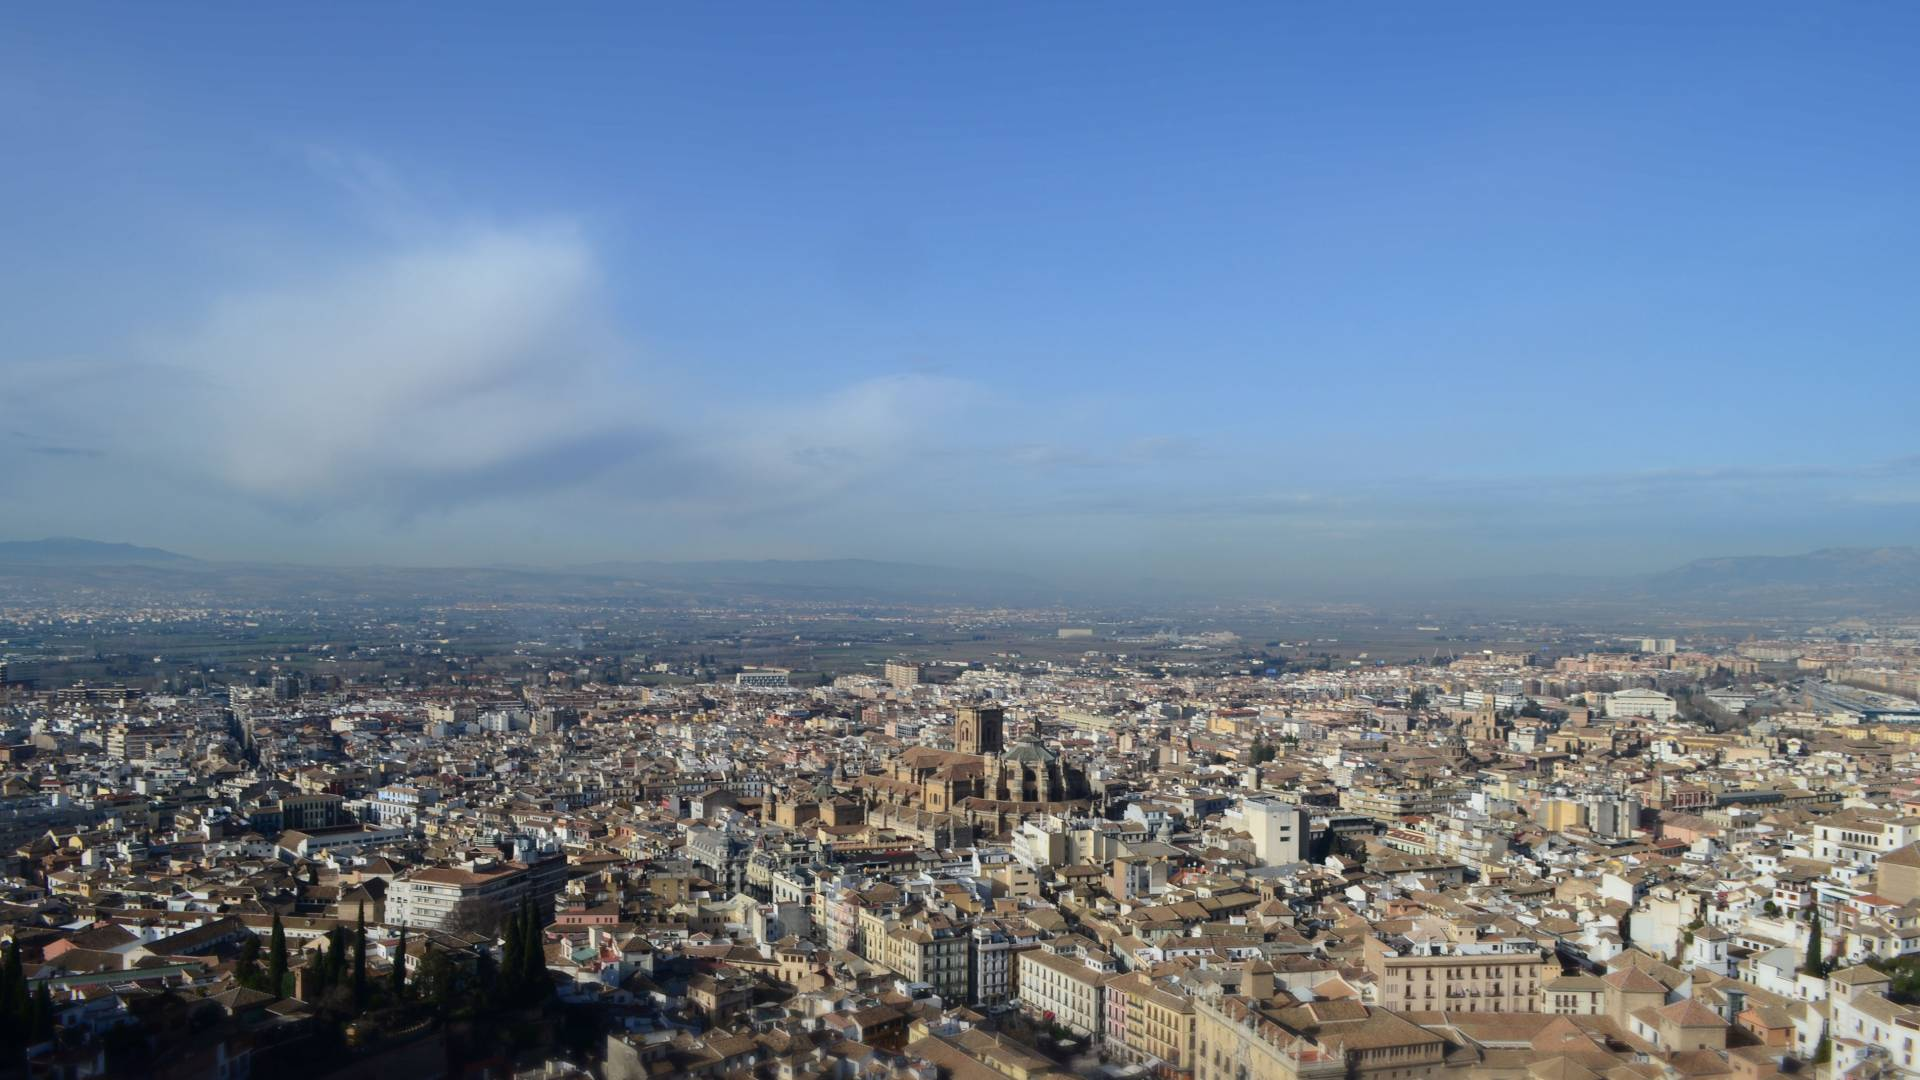 View from tallest tower of Granada's Alhambra Palace